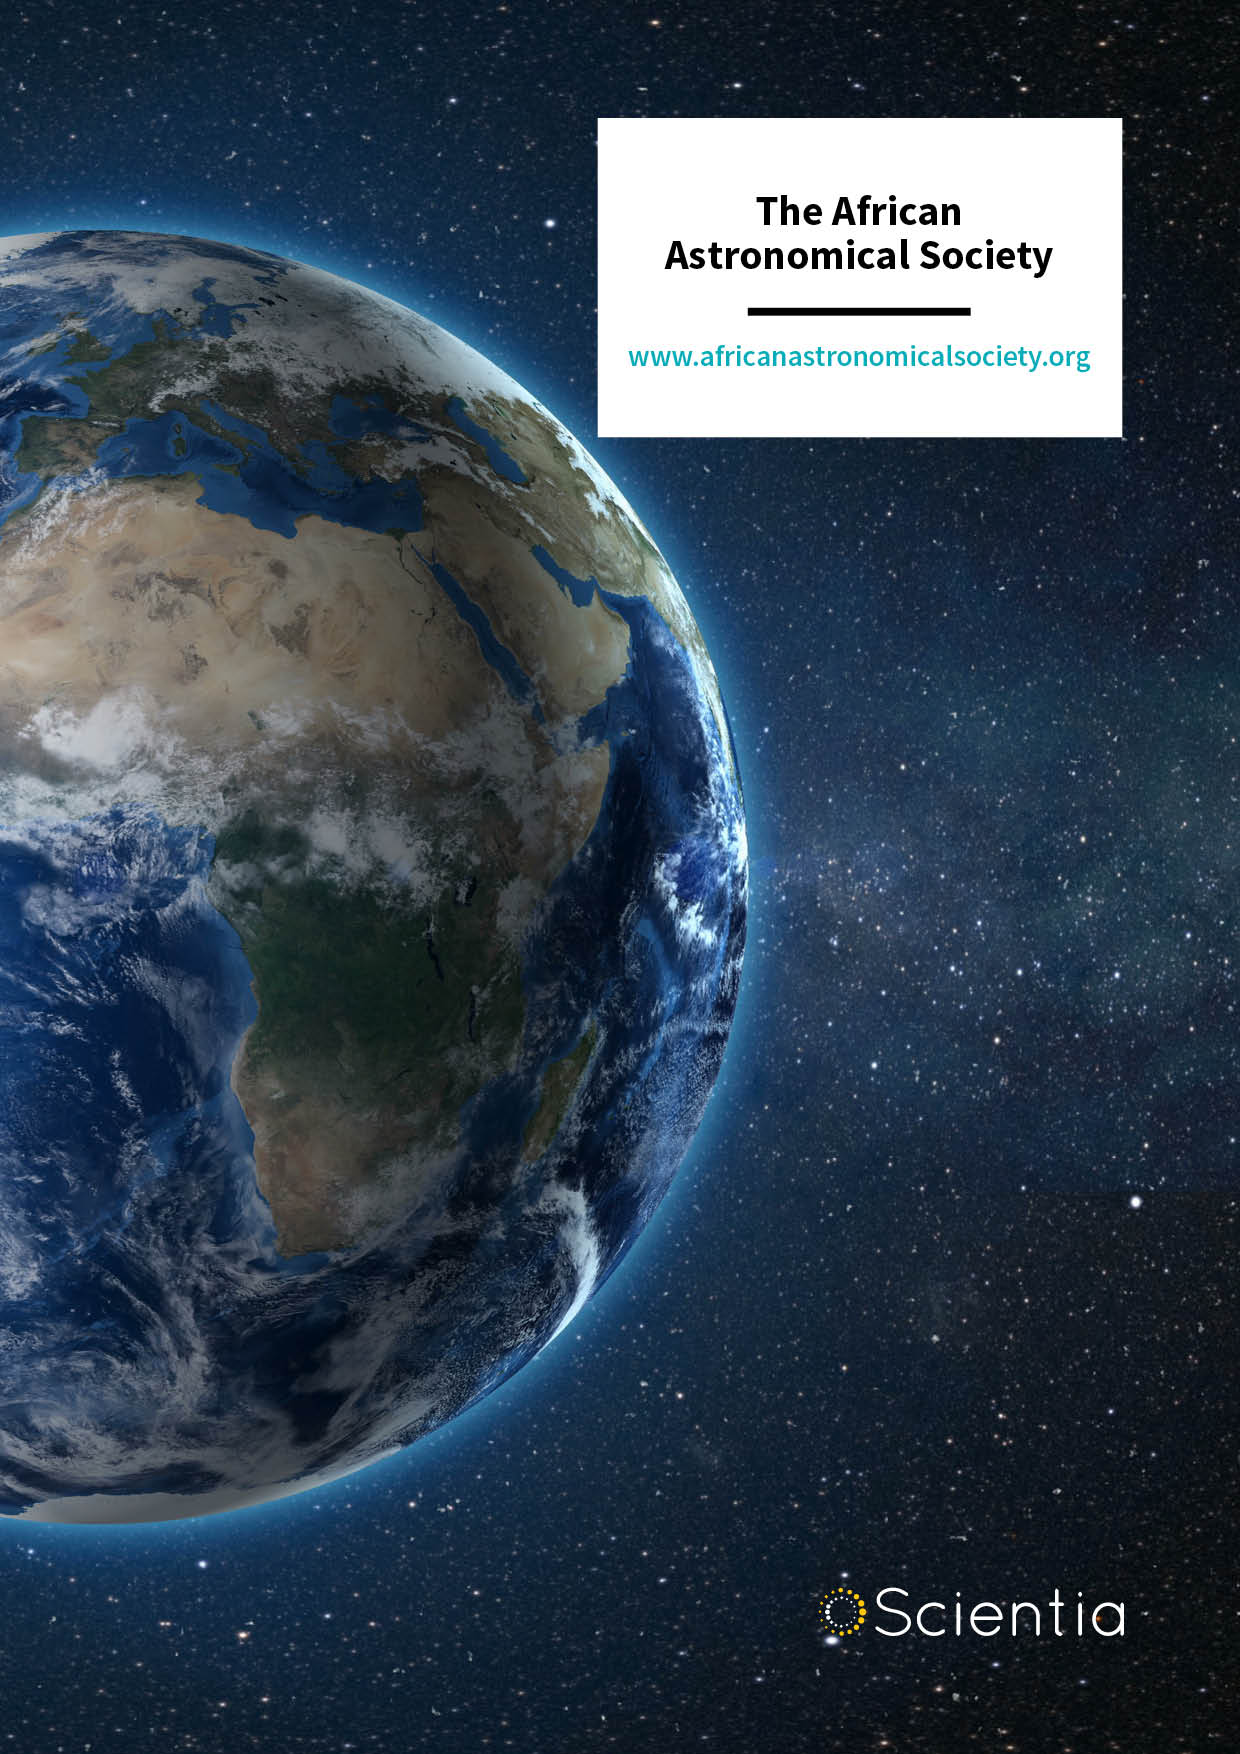 The African Astronomical Society